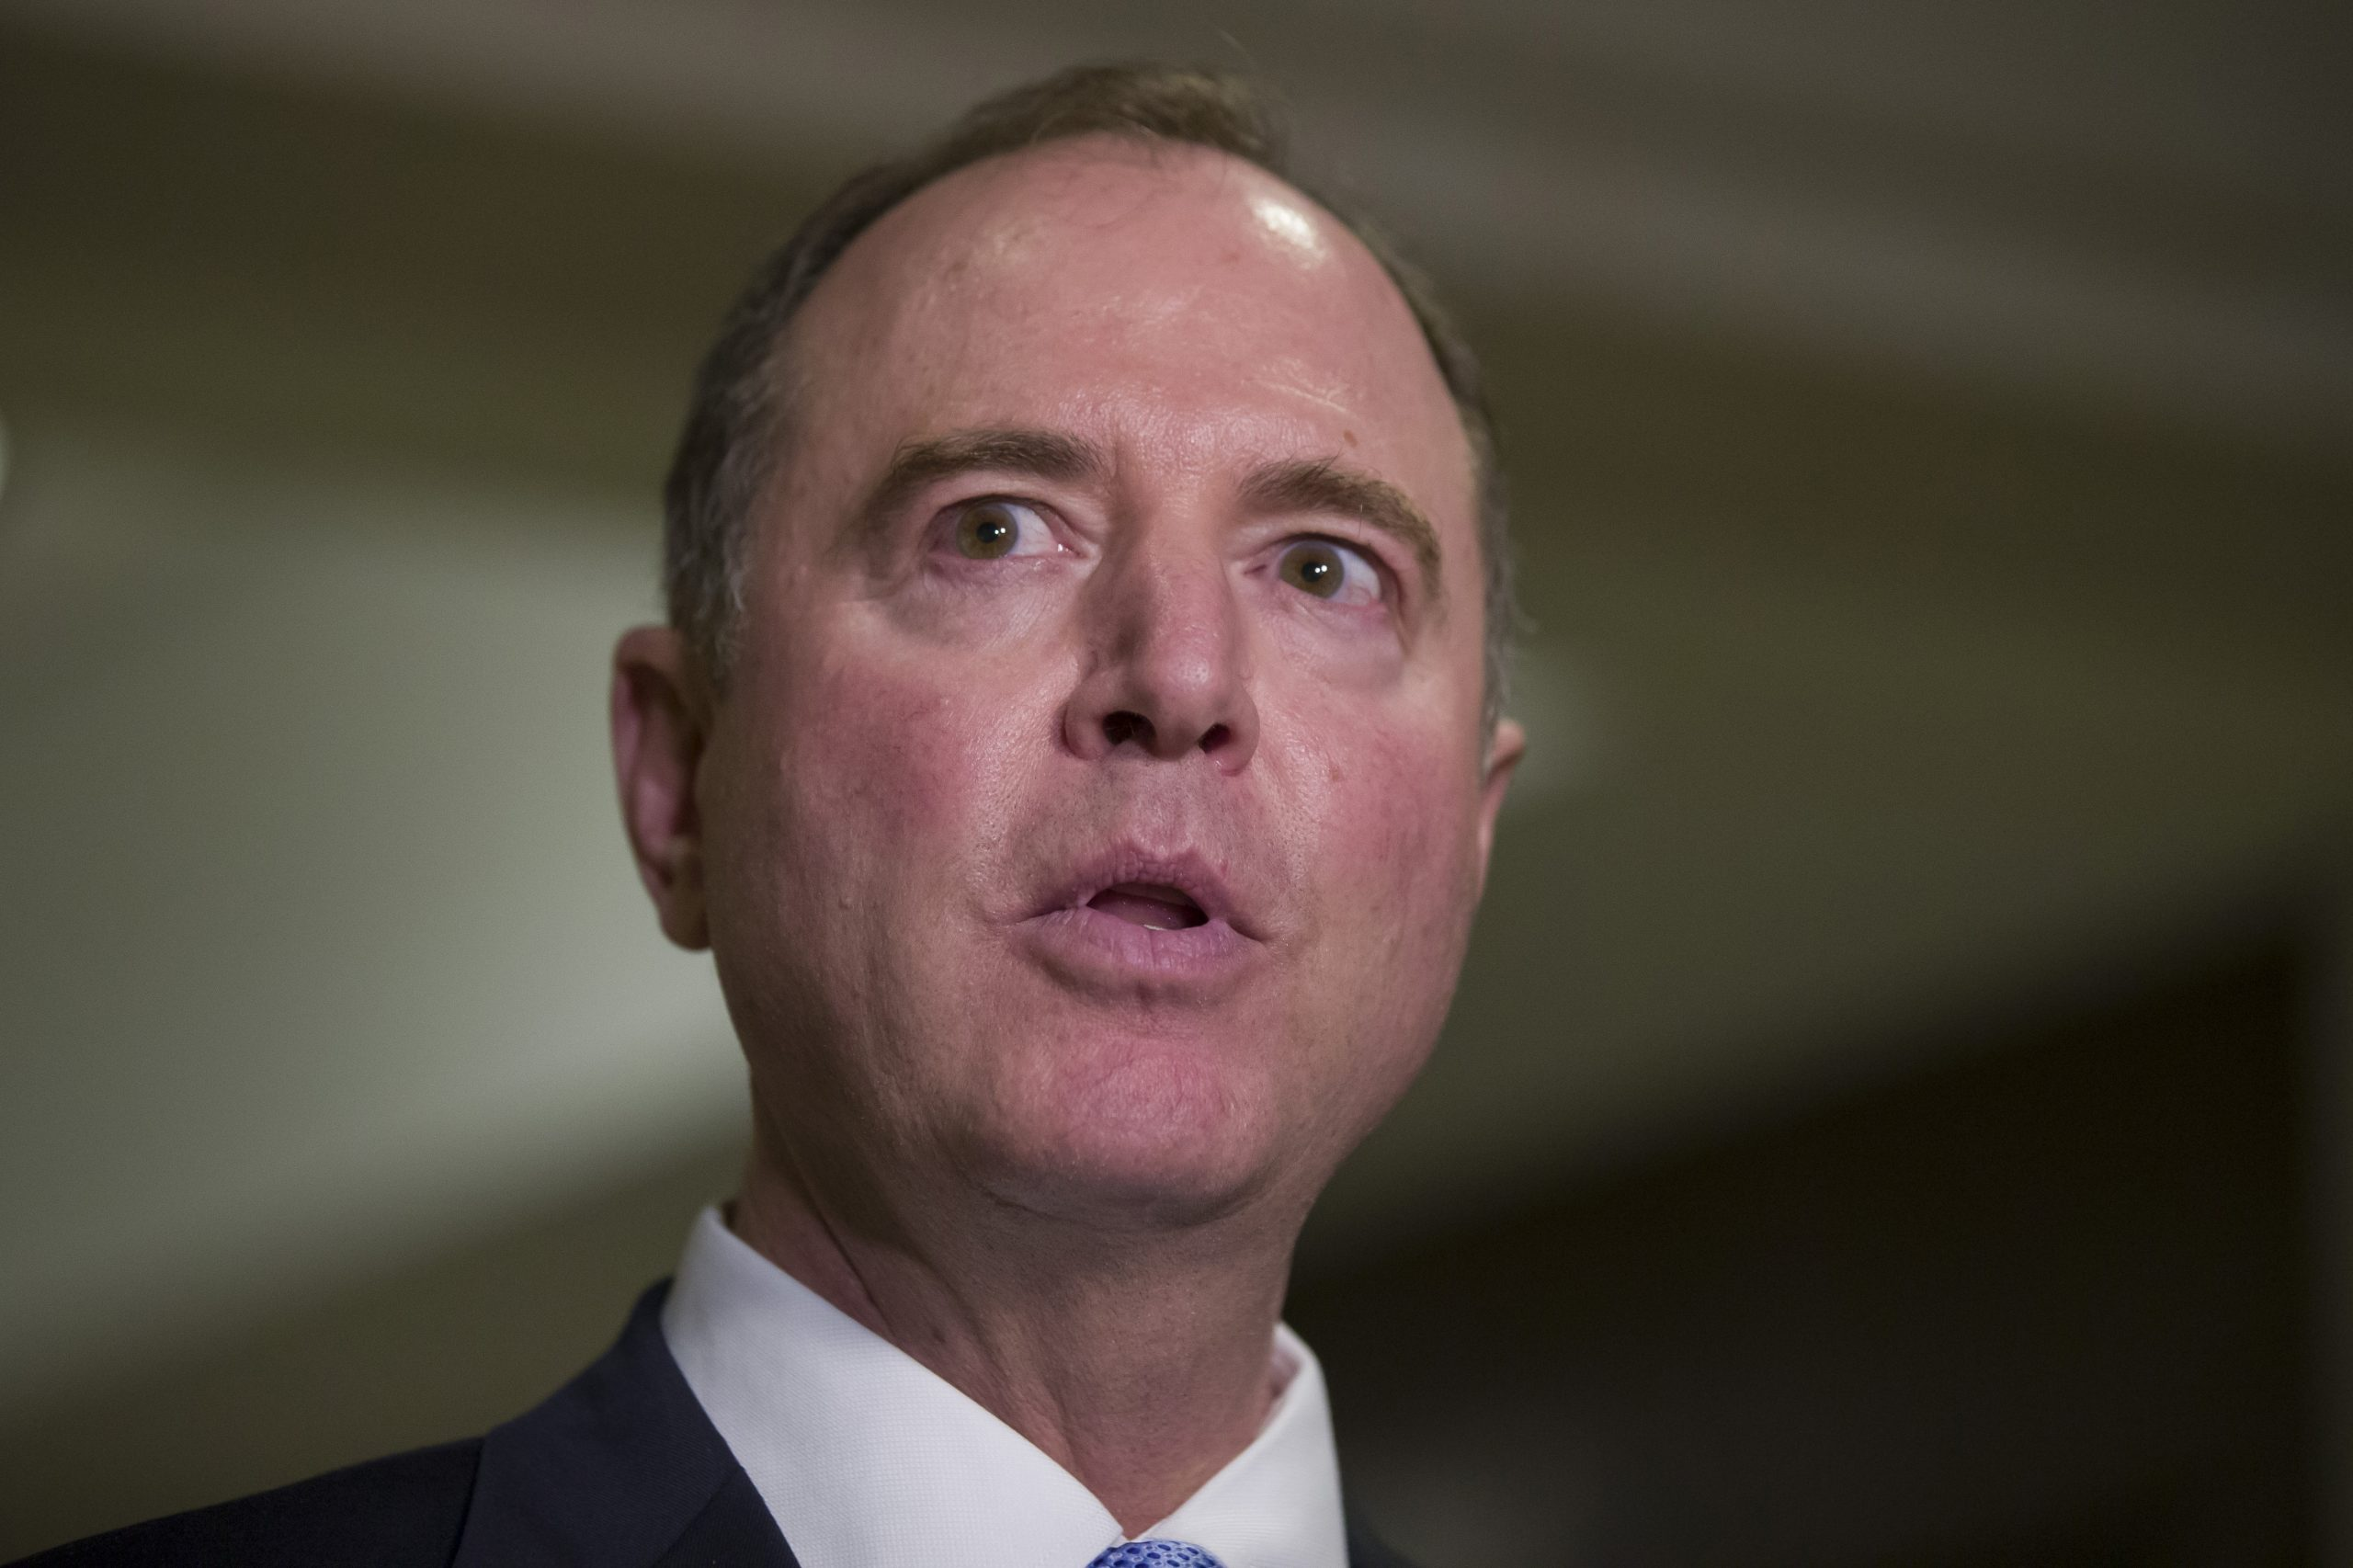 Trump should be denied intelligence briefings, Schiff says